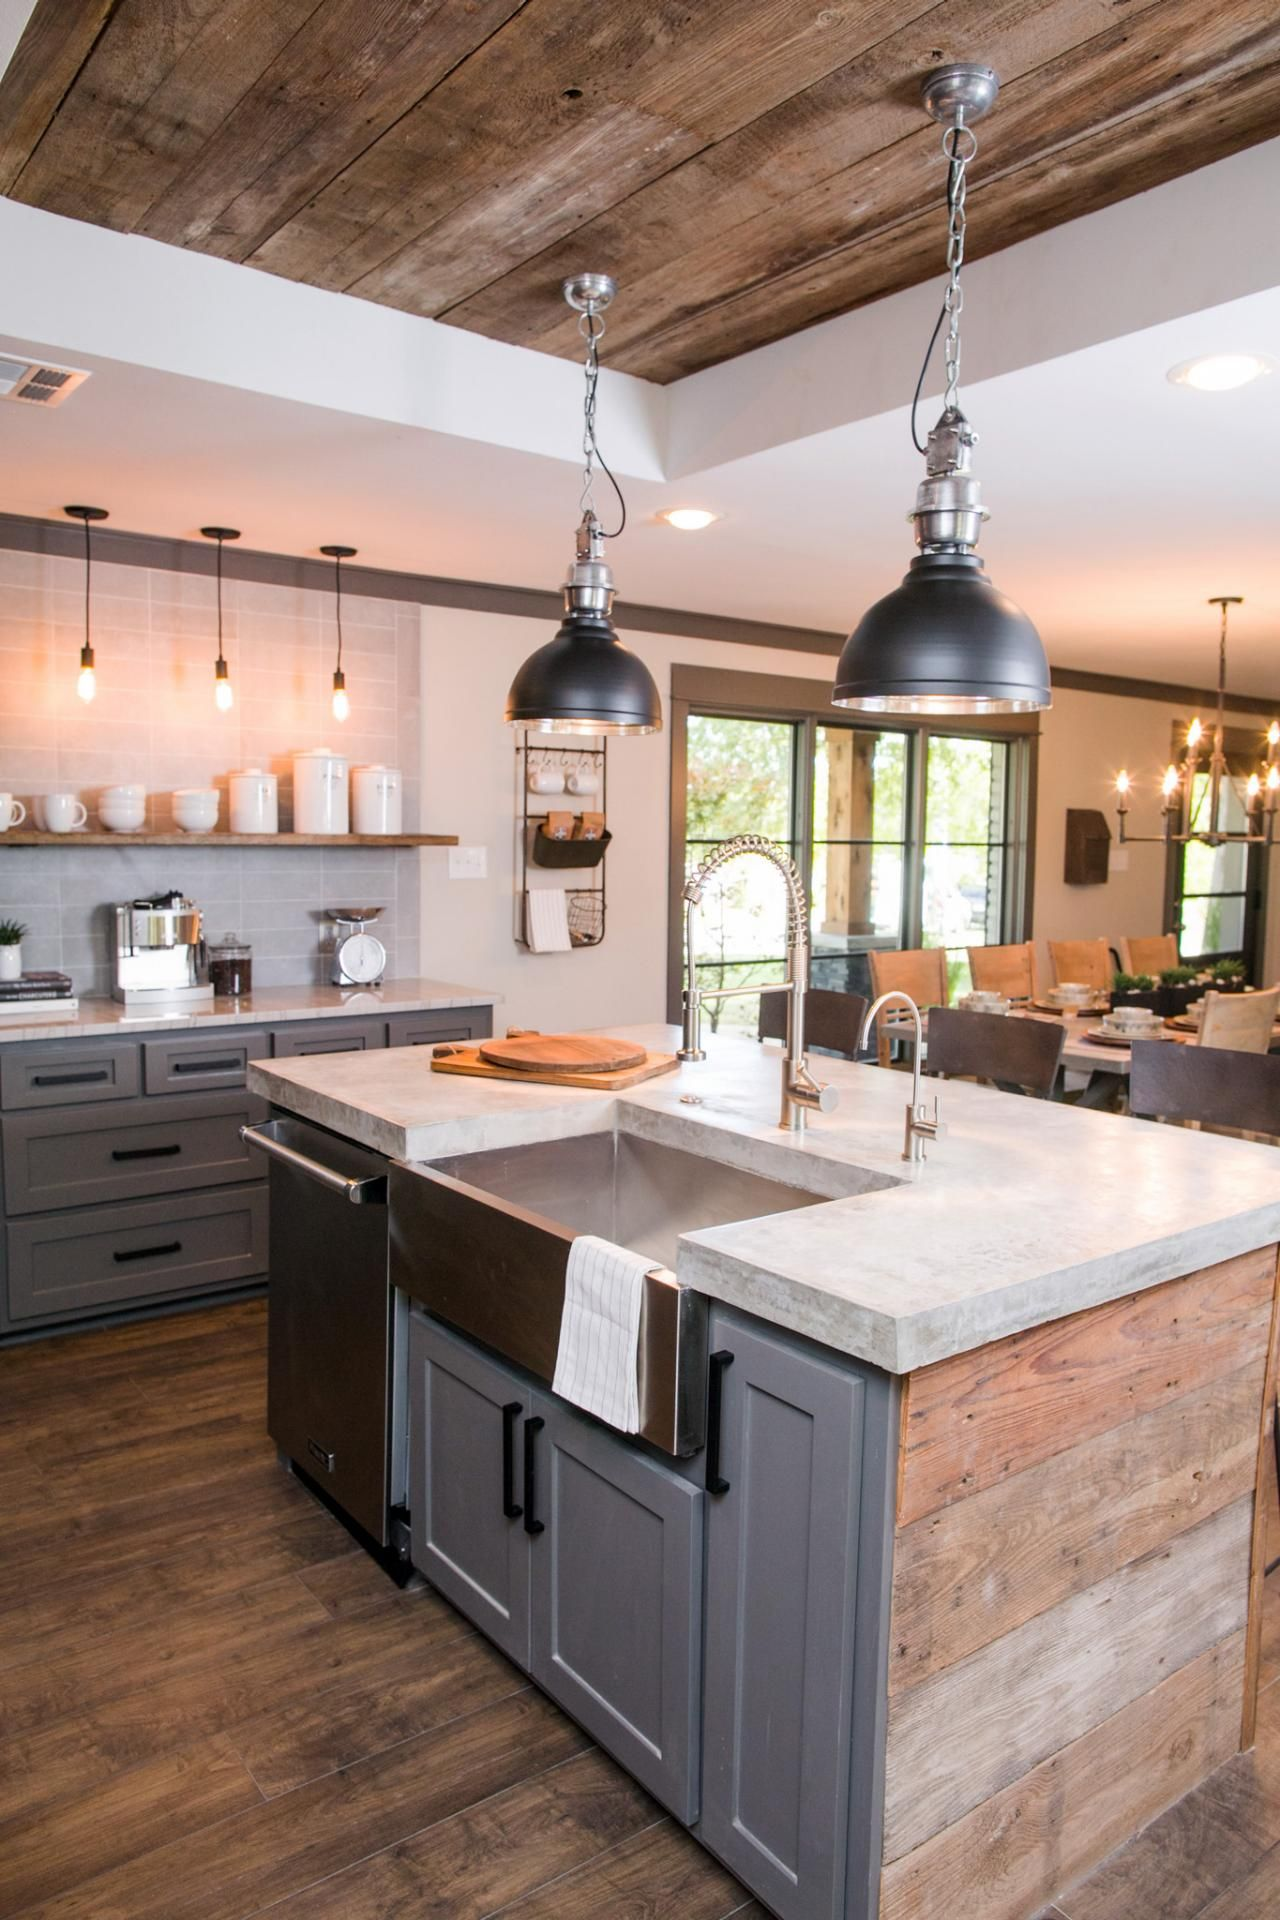 A Fixer Upper Bachelor Pad Get Chip Jo S Single Guy Design Tips Farmhouse Kitchen Design Kitchen Island With Sink Farmhouse Kitchen Cabinets